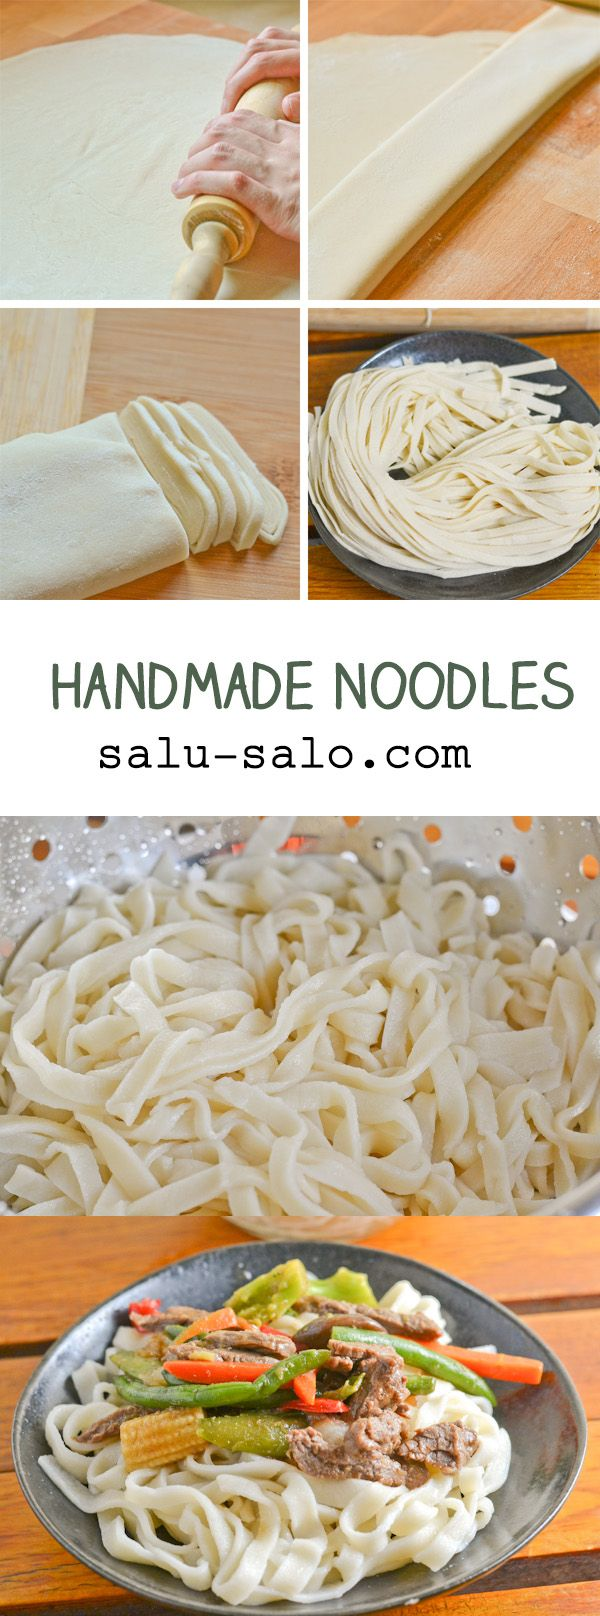 Handmade Noodles                                                                                                                                                      More